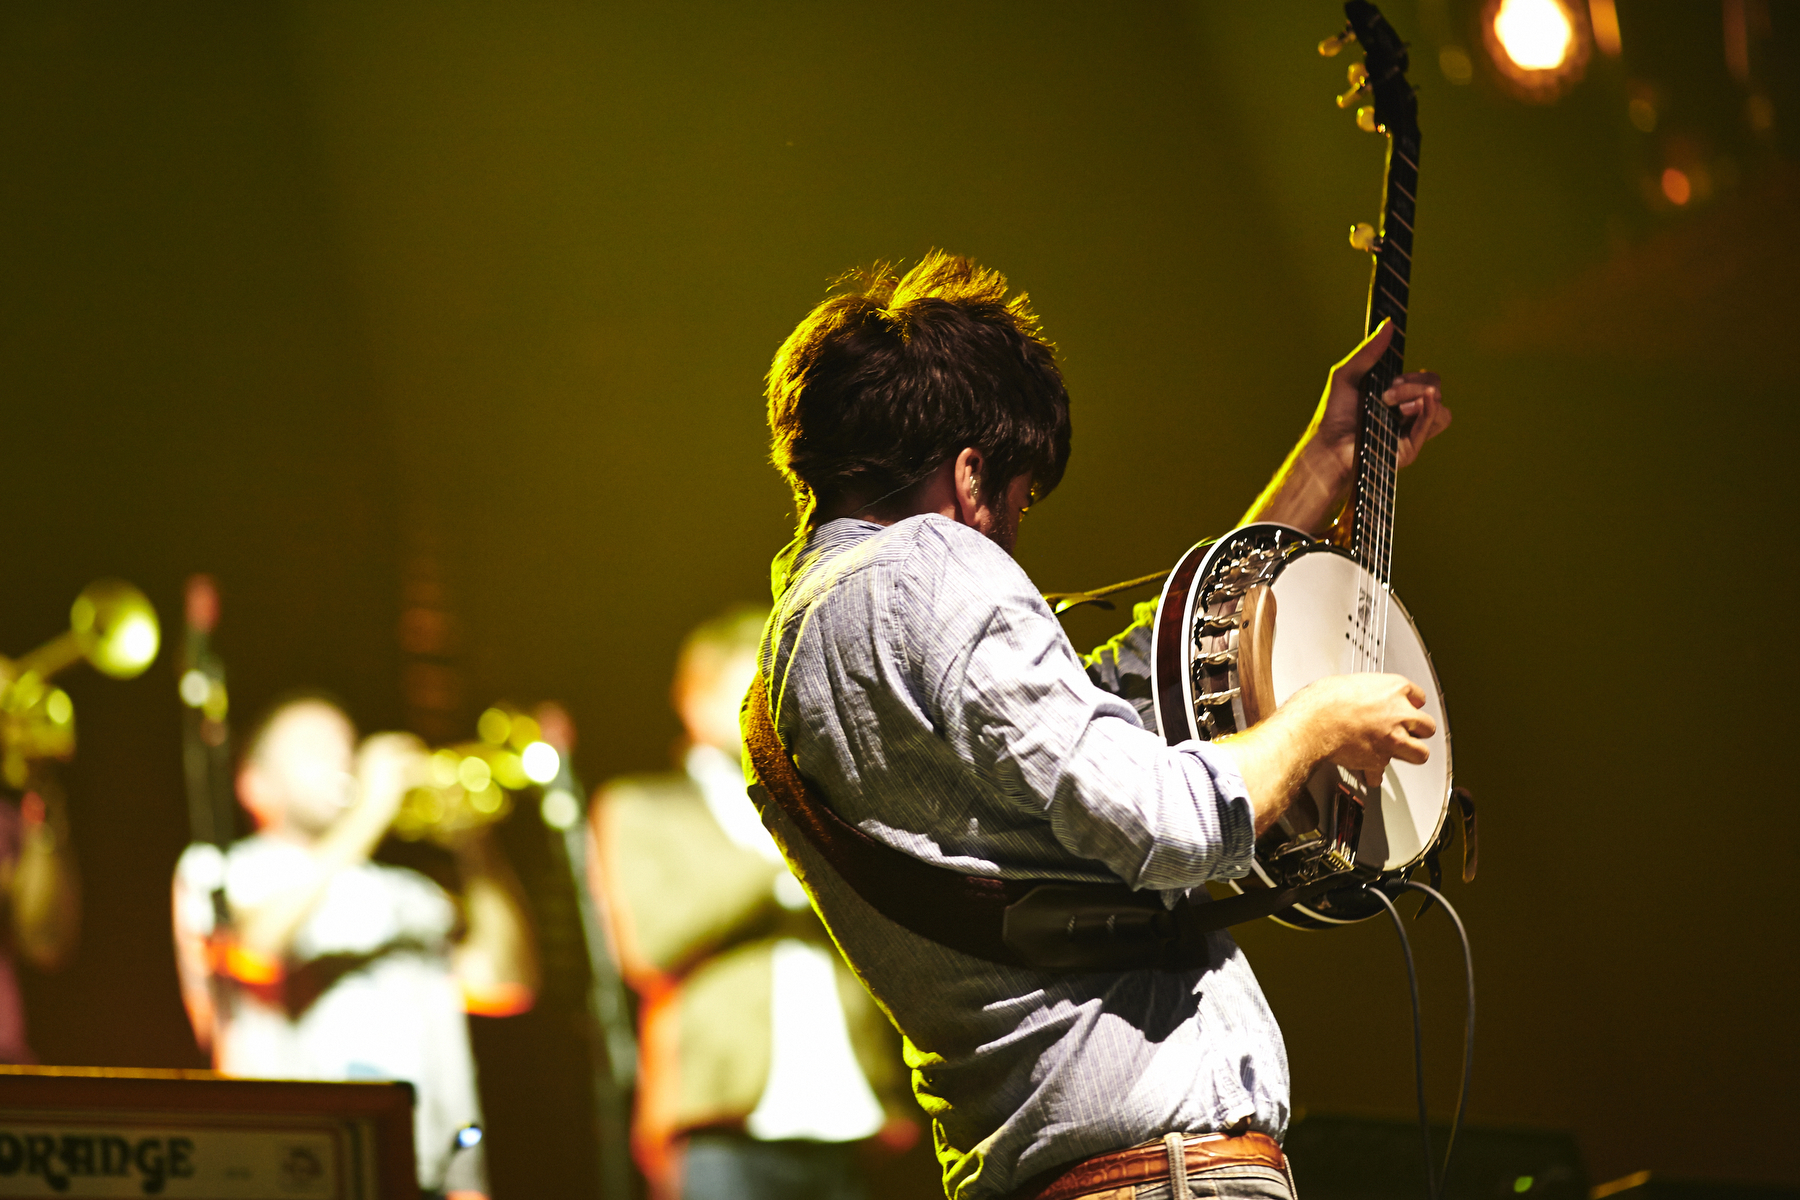 Mumford_And_Sons_At_Xcel_Energy_Center_By_Joe_Lemke_Medium_Res_005.JPG